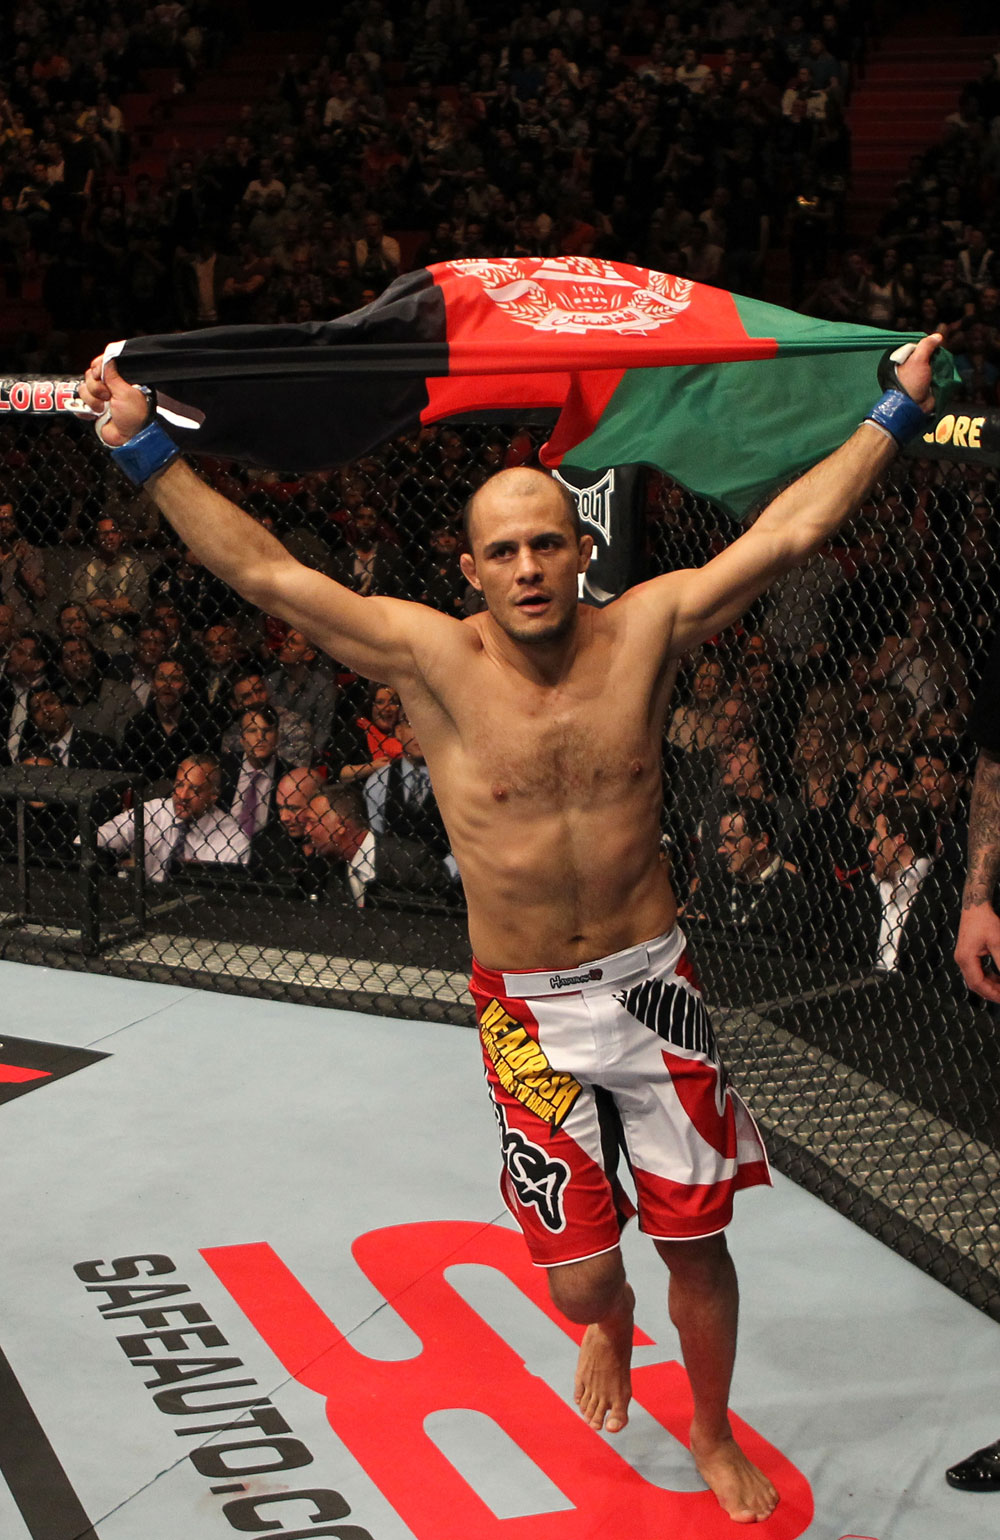 STOCKHOLM, SWEDEN - APRIL 14: Siyar Bahadurzada reacts to his win over Paulo Thiago at the UFC on Fuel TV event at Ericsson Globe on April 14, 2012 in Stockholm, Sweden. (Photo by Josh Hedges/Zuffa LLC/Zuffa LLC via Getty Images)